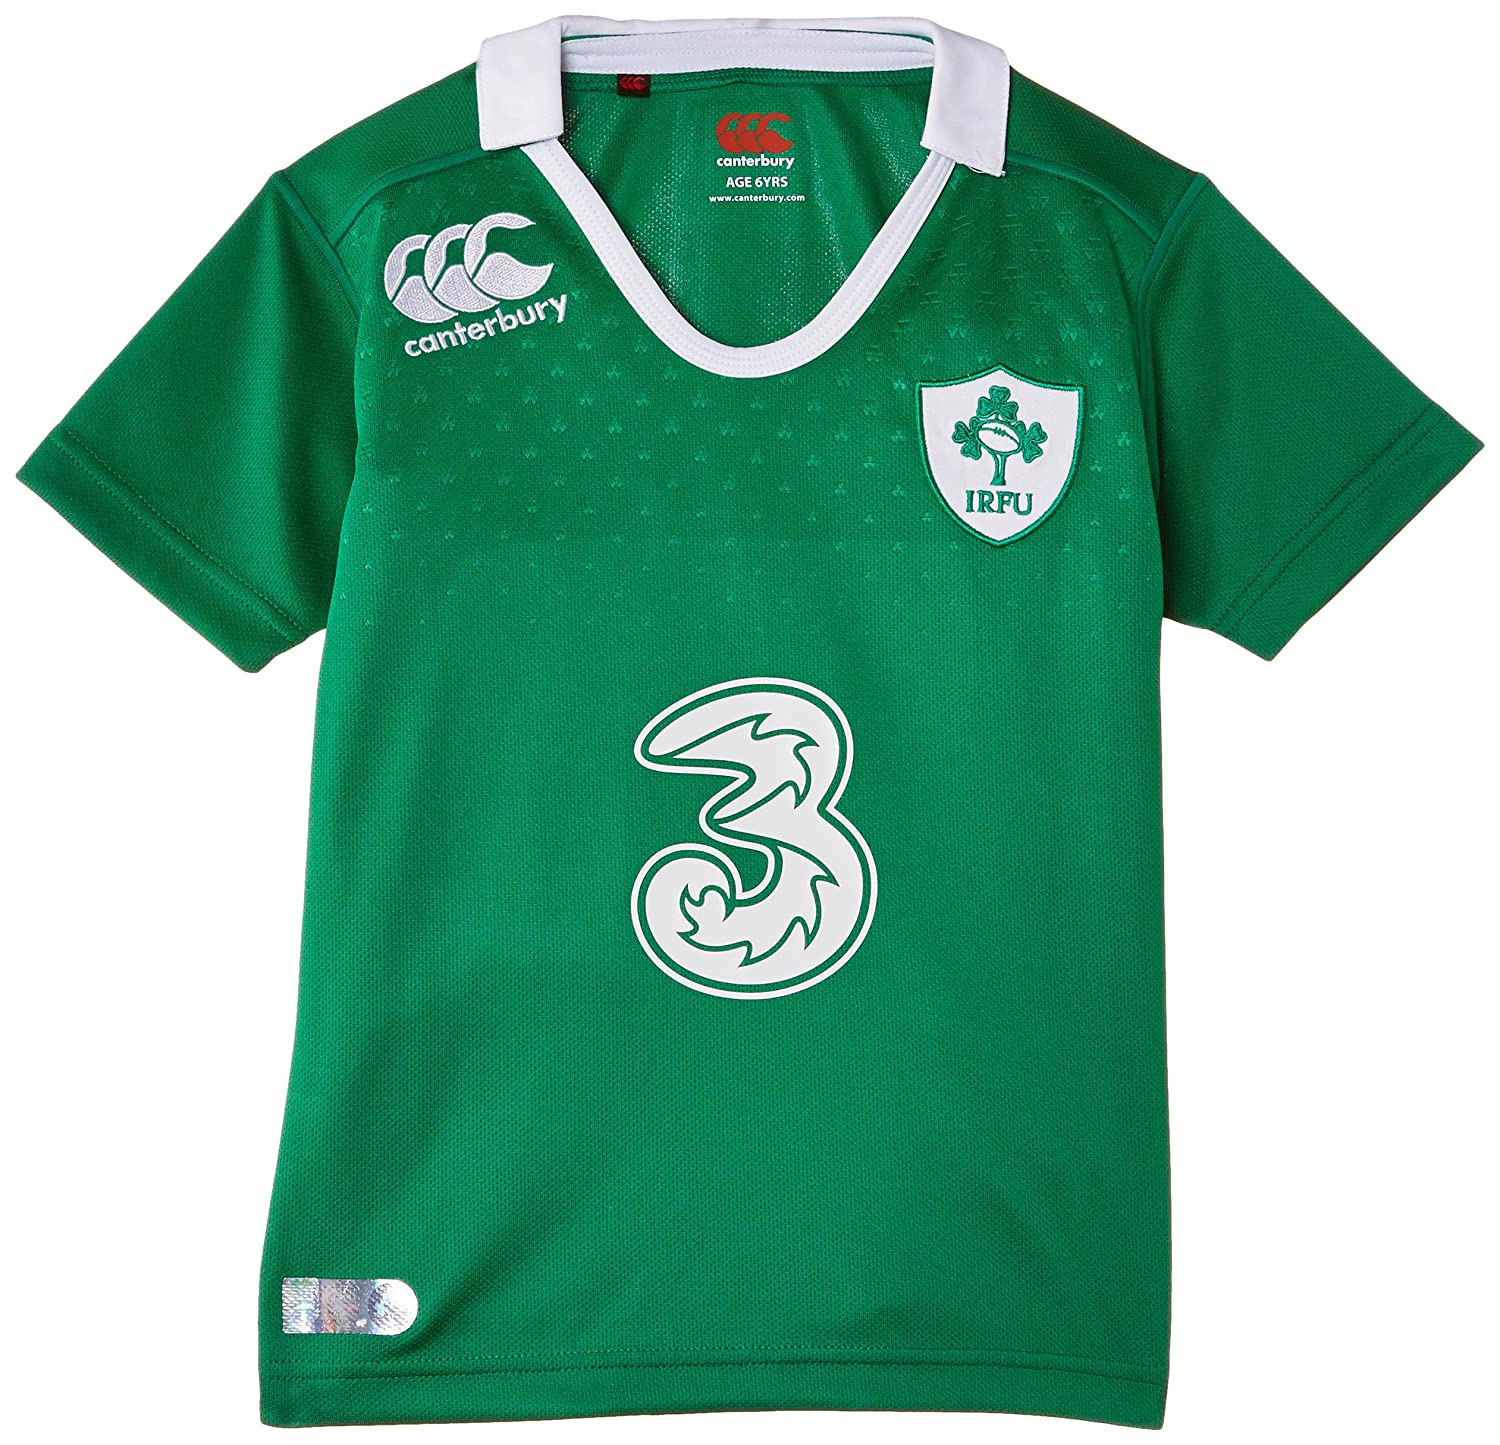 2014-2015 Ireland Home Pro Rugby Shirt (Kids) Canterbury